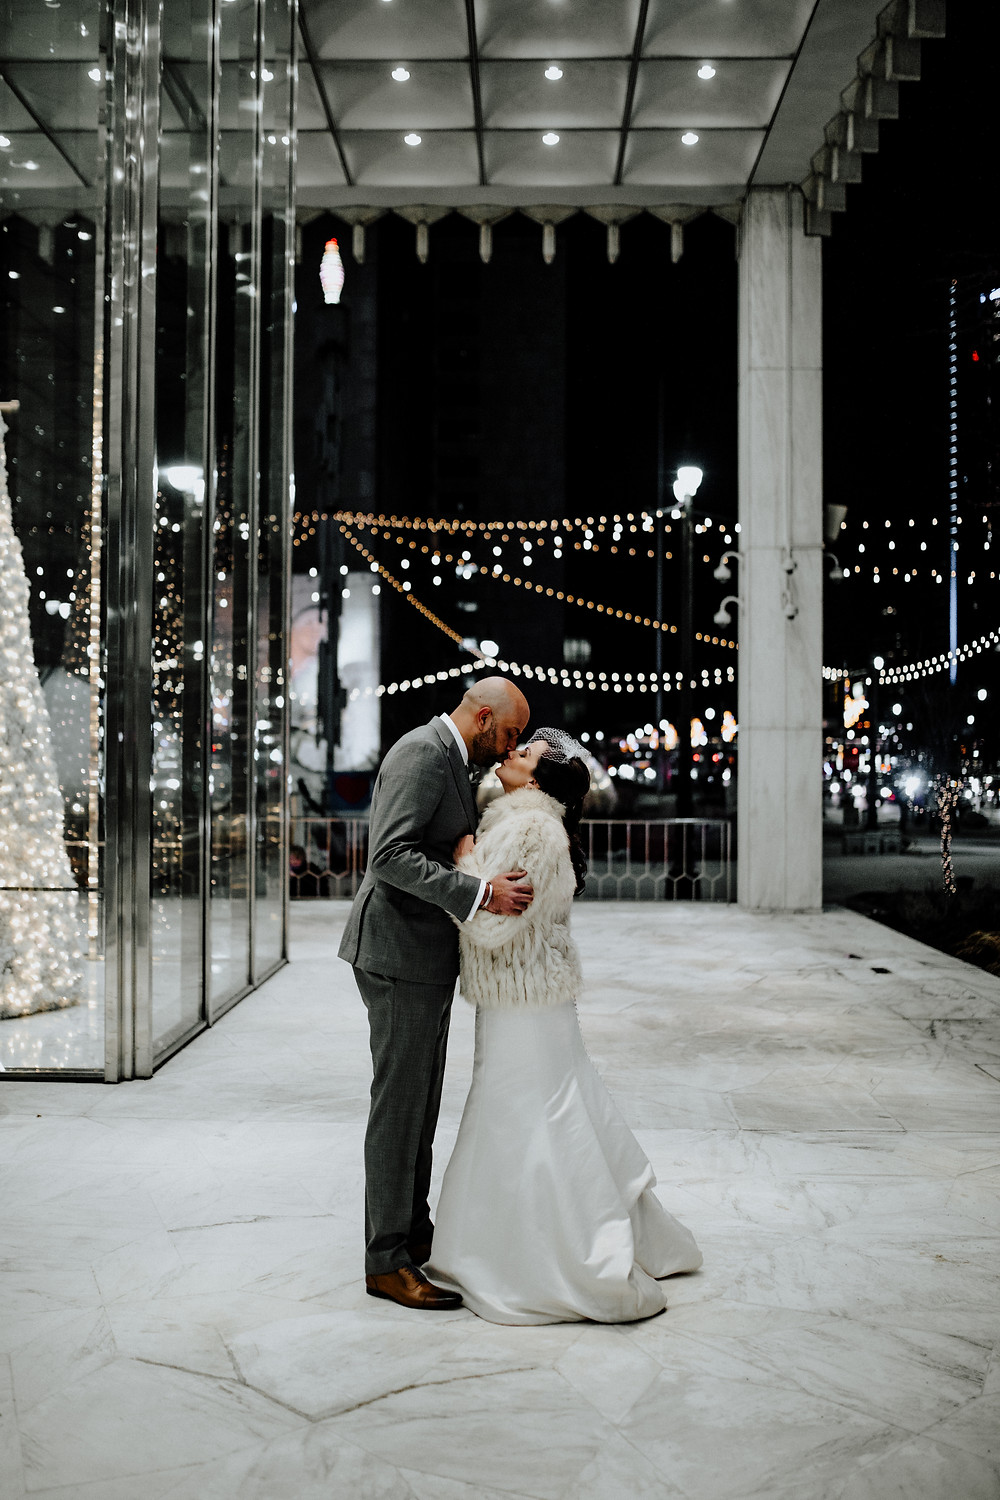 night wedding photo taken in downtown detroit by little blue bird photography.